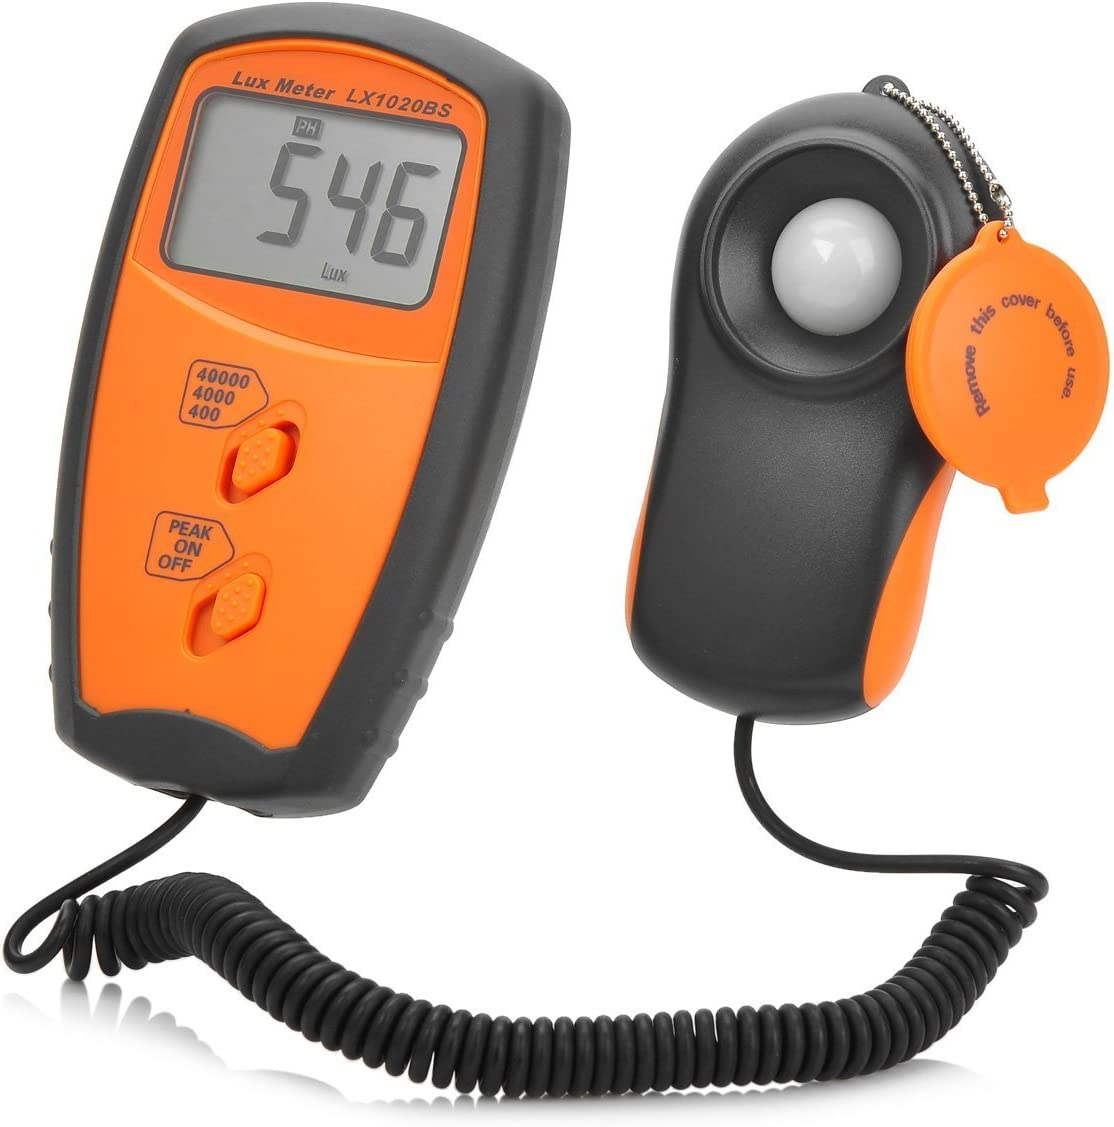 HUACHEN-LS Moisture Meter Wood Measure Fixed price for sale Easy-to-use 4000Lux Light Digital lux